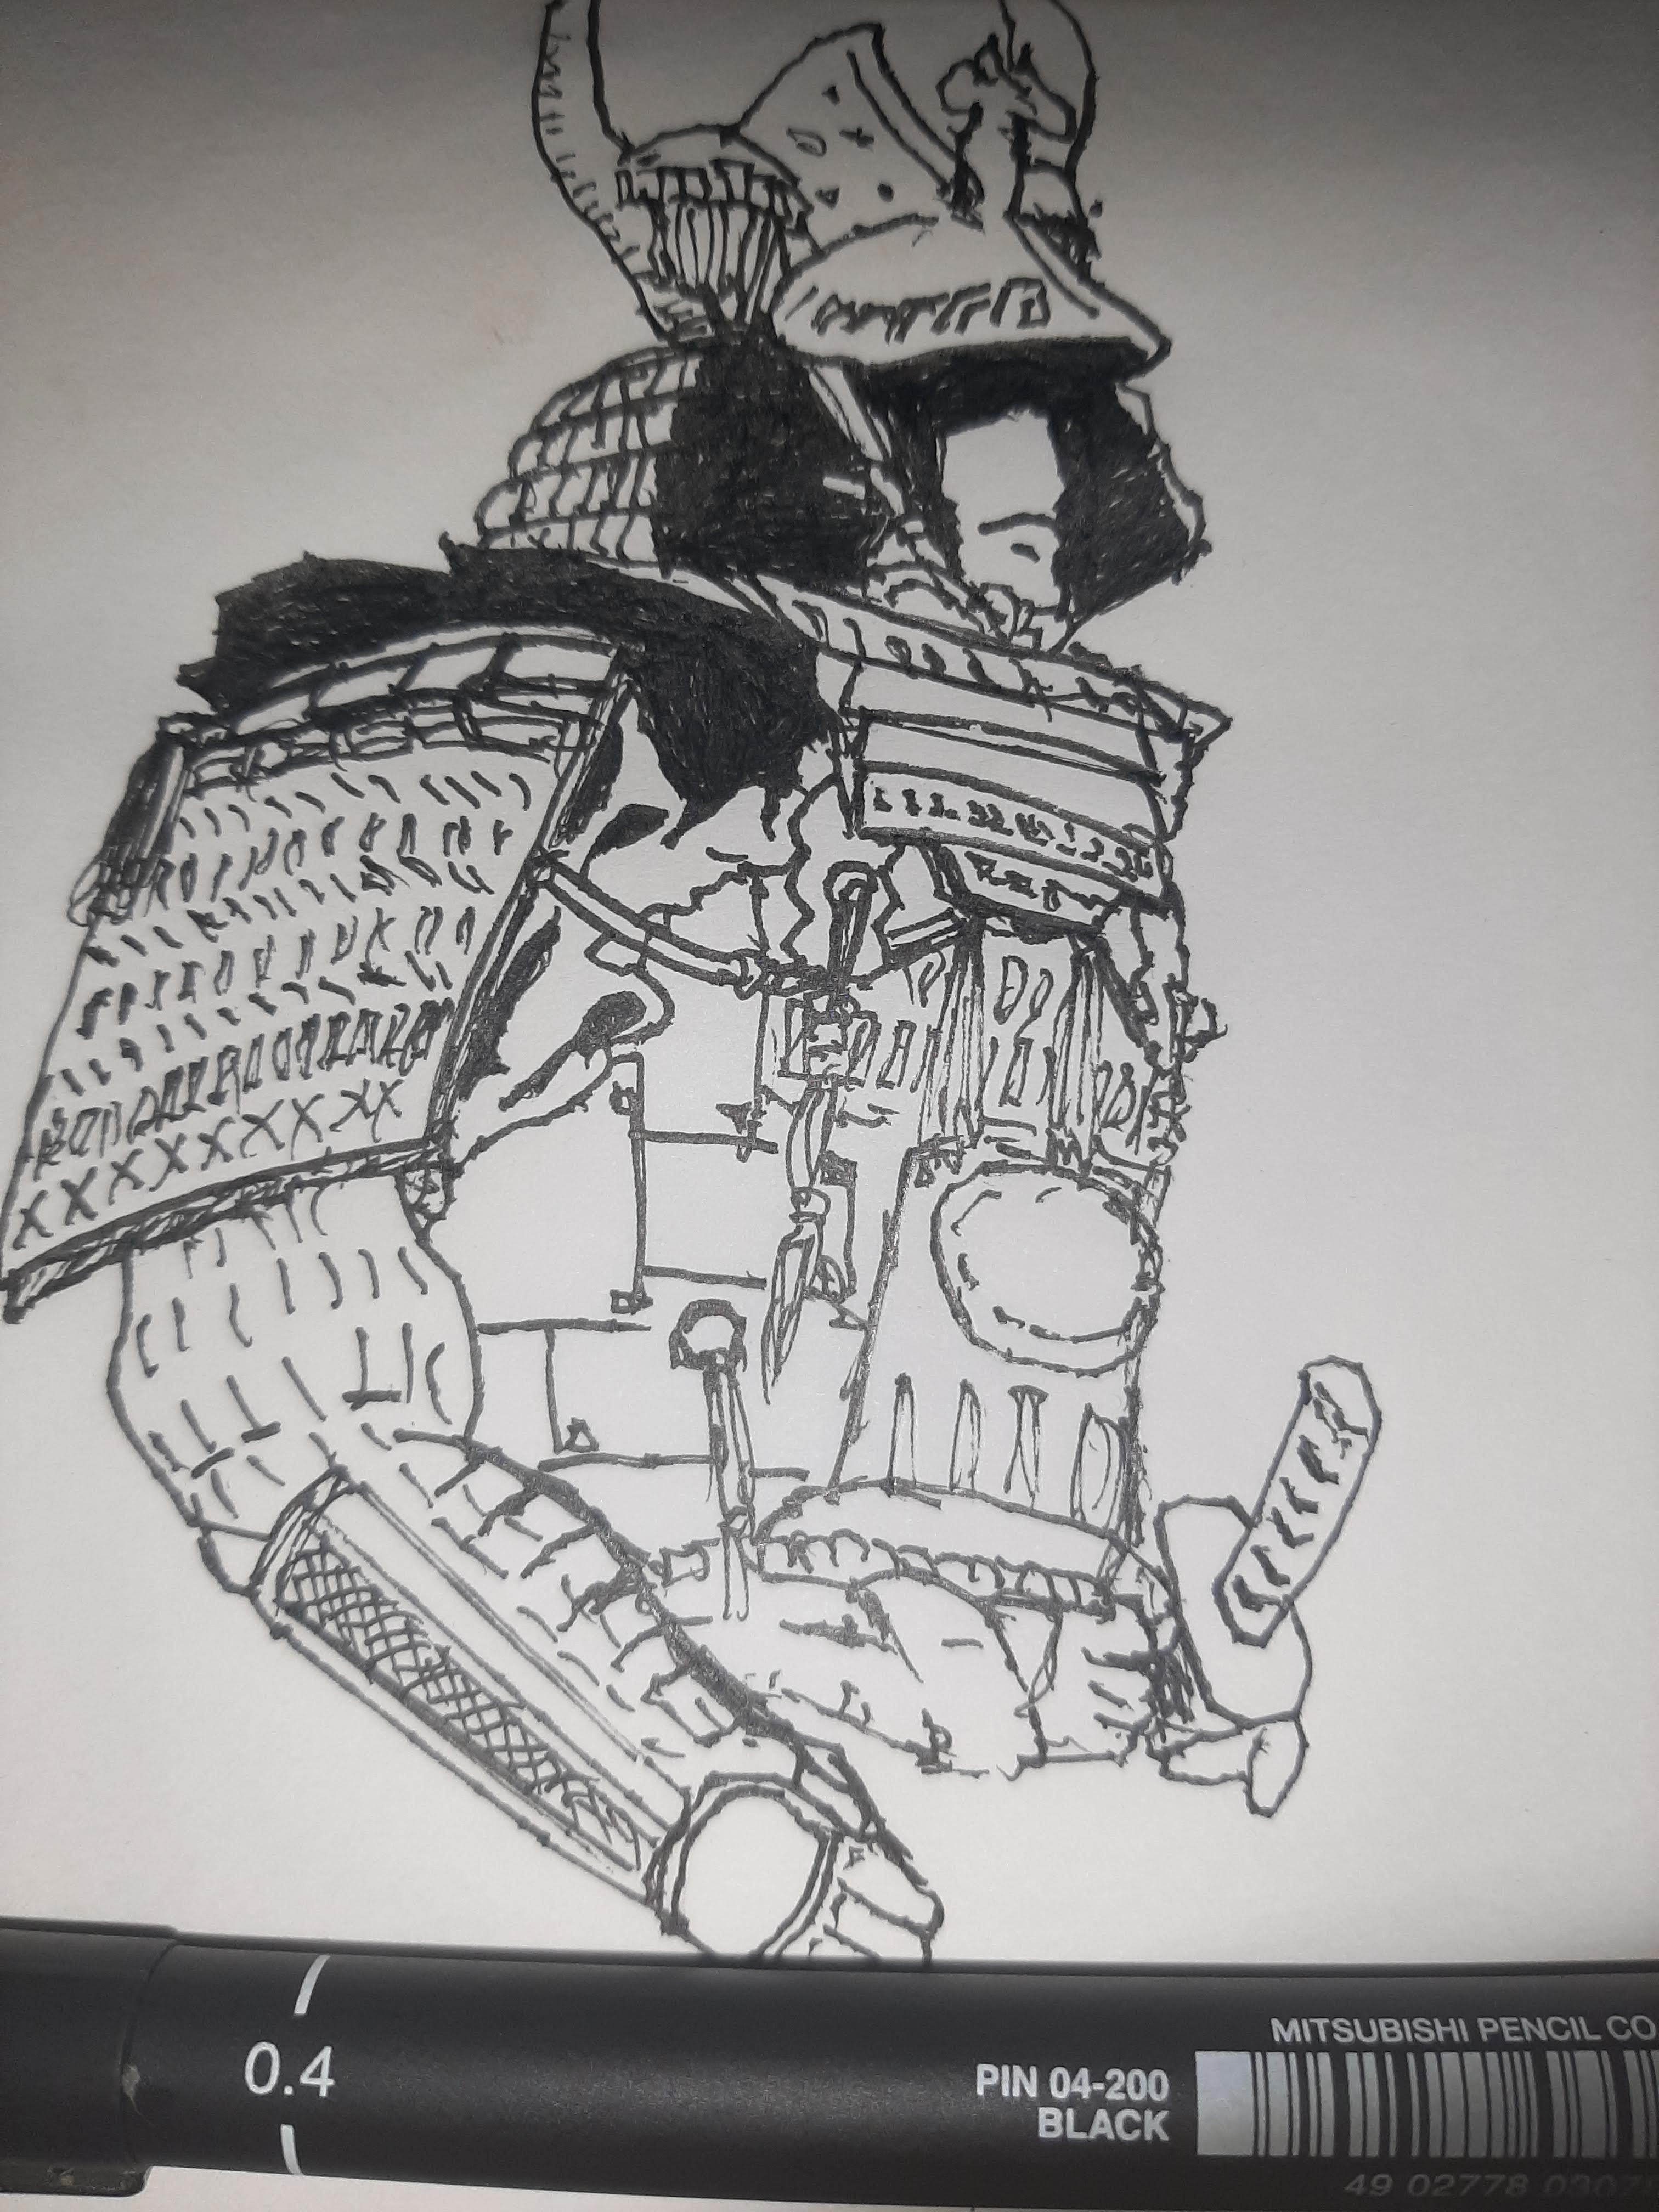 Inktober 2020 day 14: ARMOR This one kind of got away from me. Official prompt list: https://inktober.com/rules